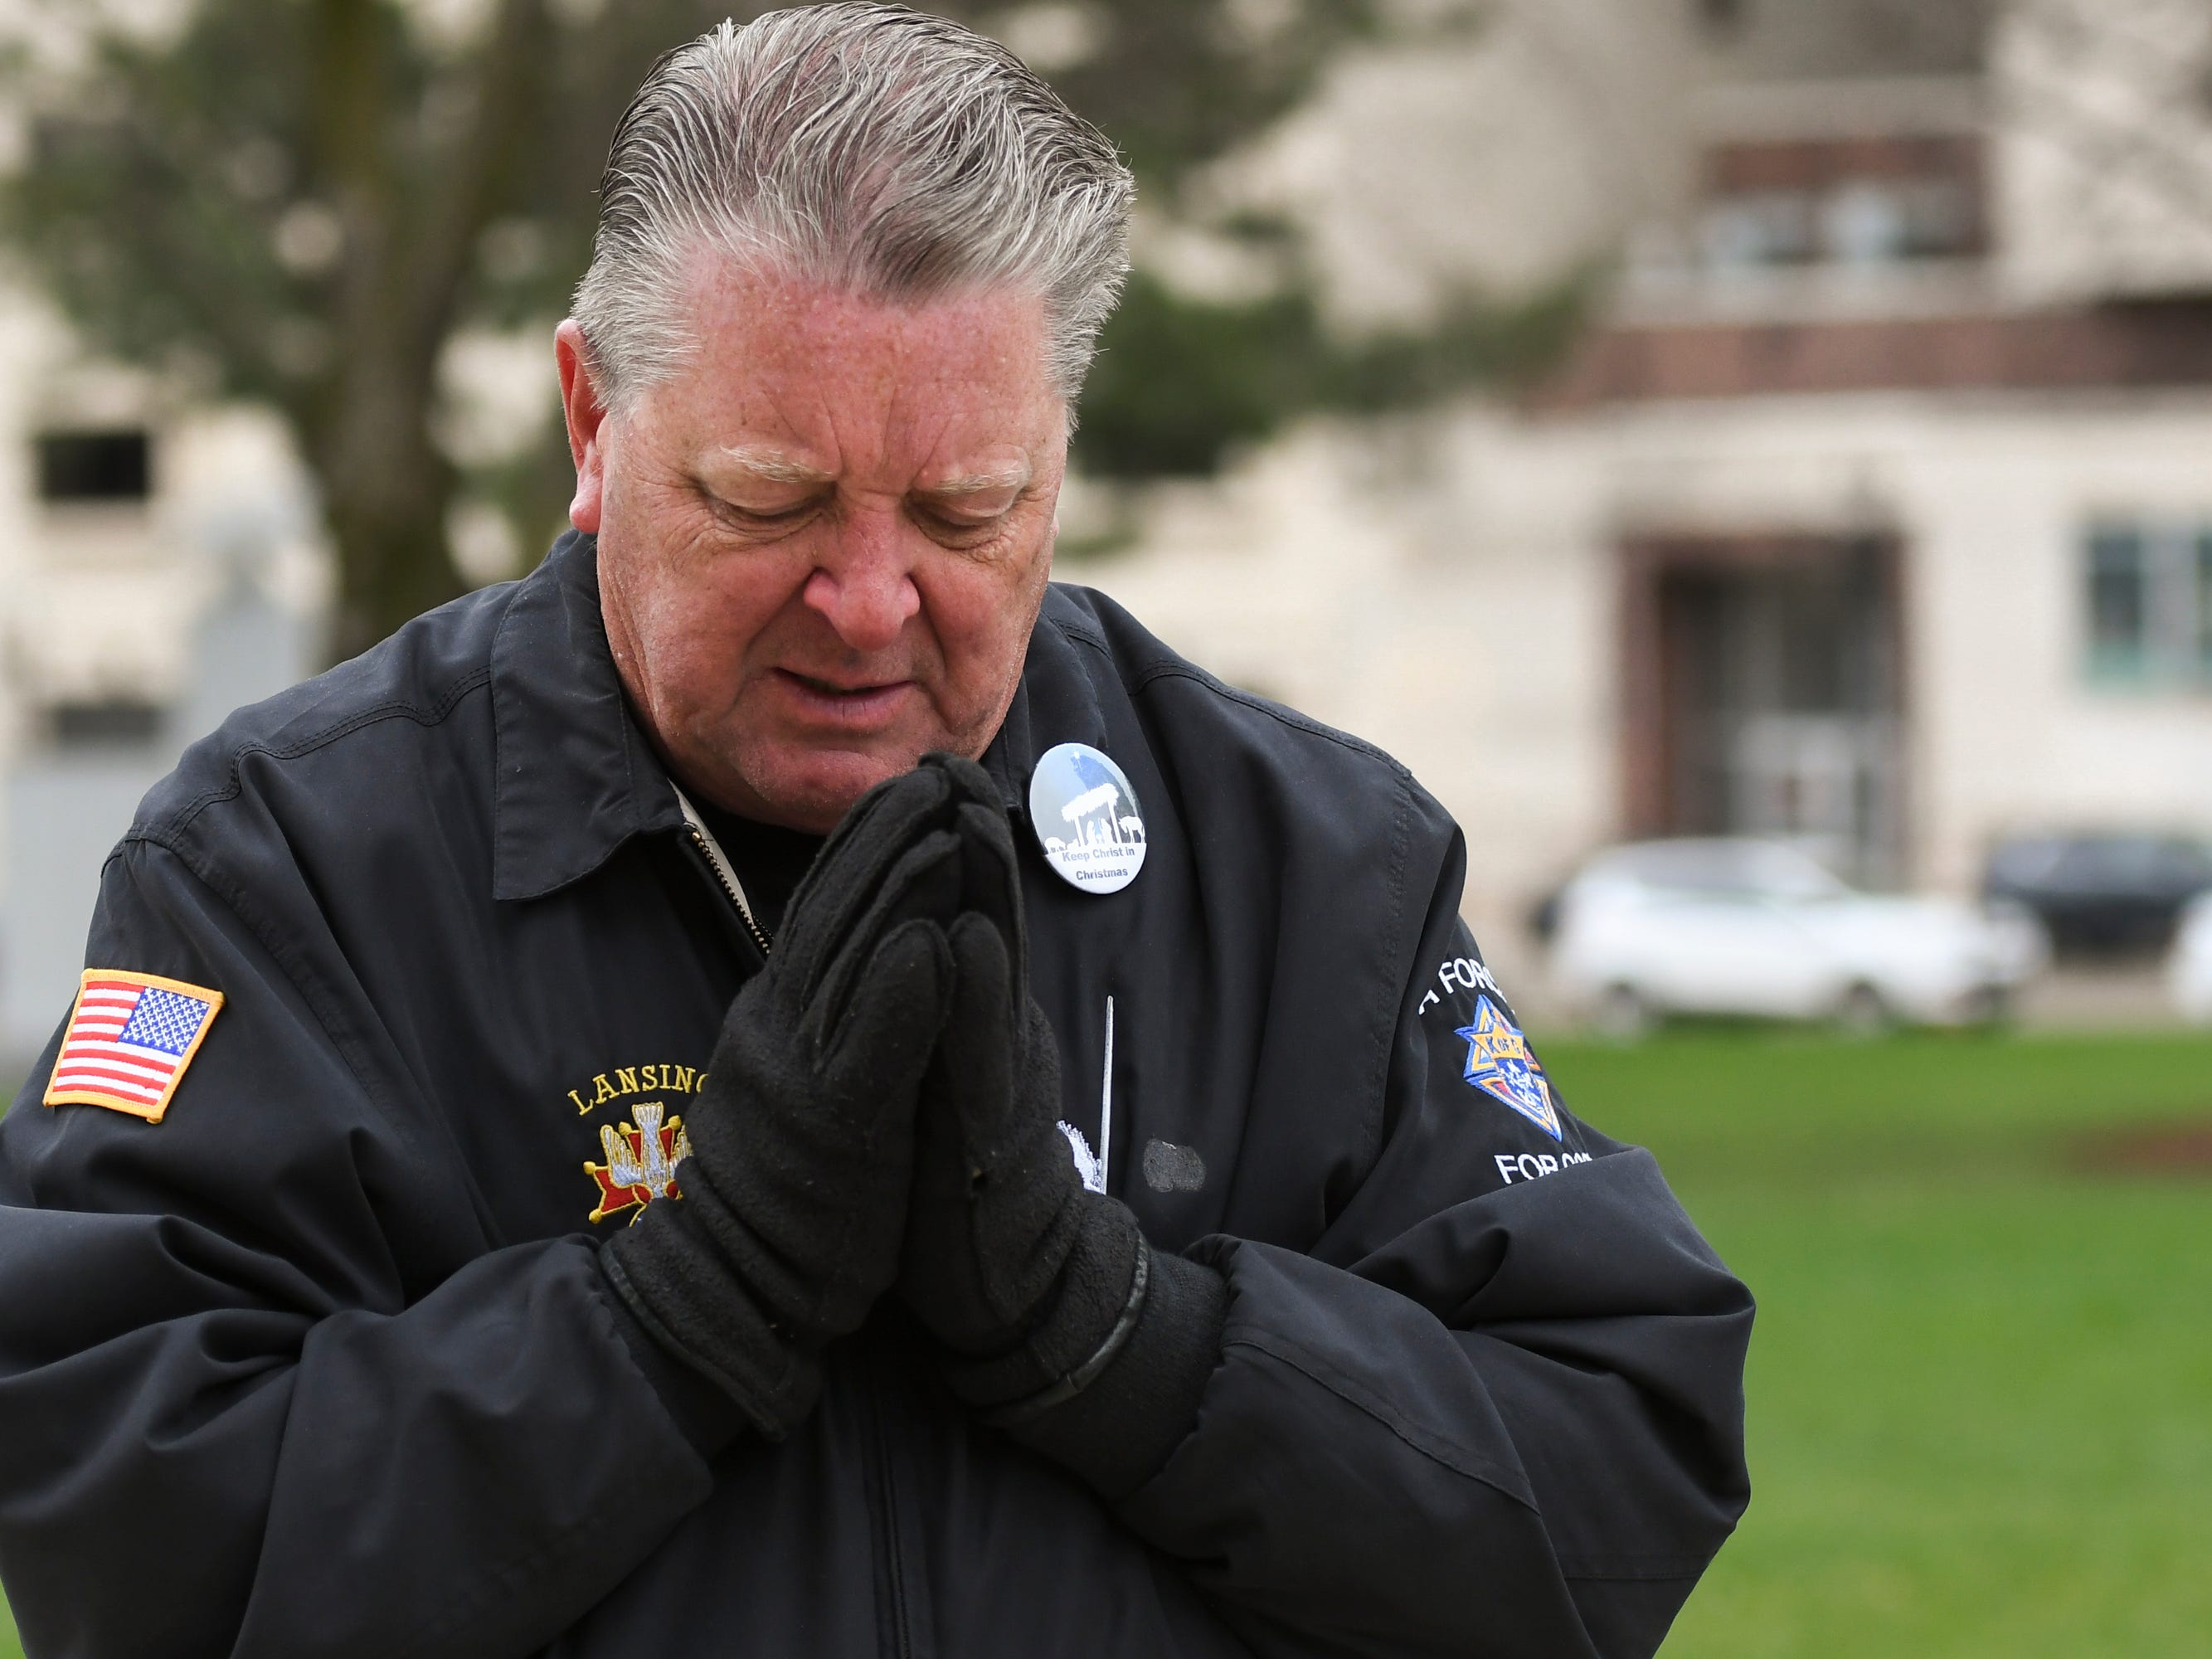 """Daniel Reine prays on Good Friday, April 19, 2019, outside of the State Capitol where Cristo Rey presented """"Stations of the Cross."""""""